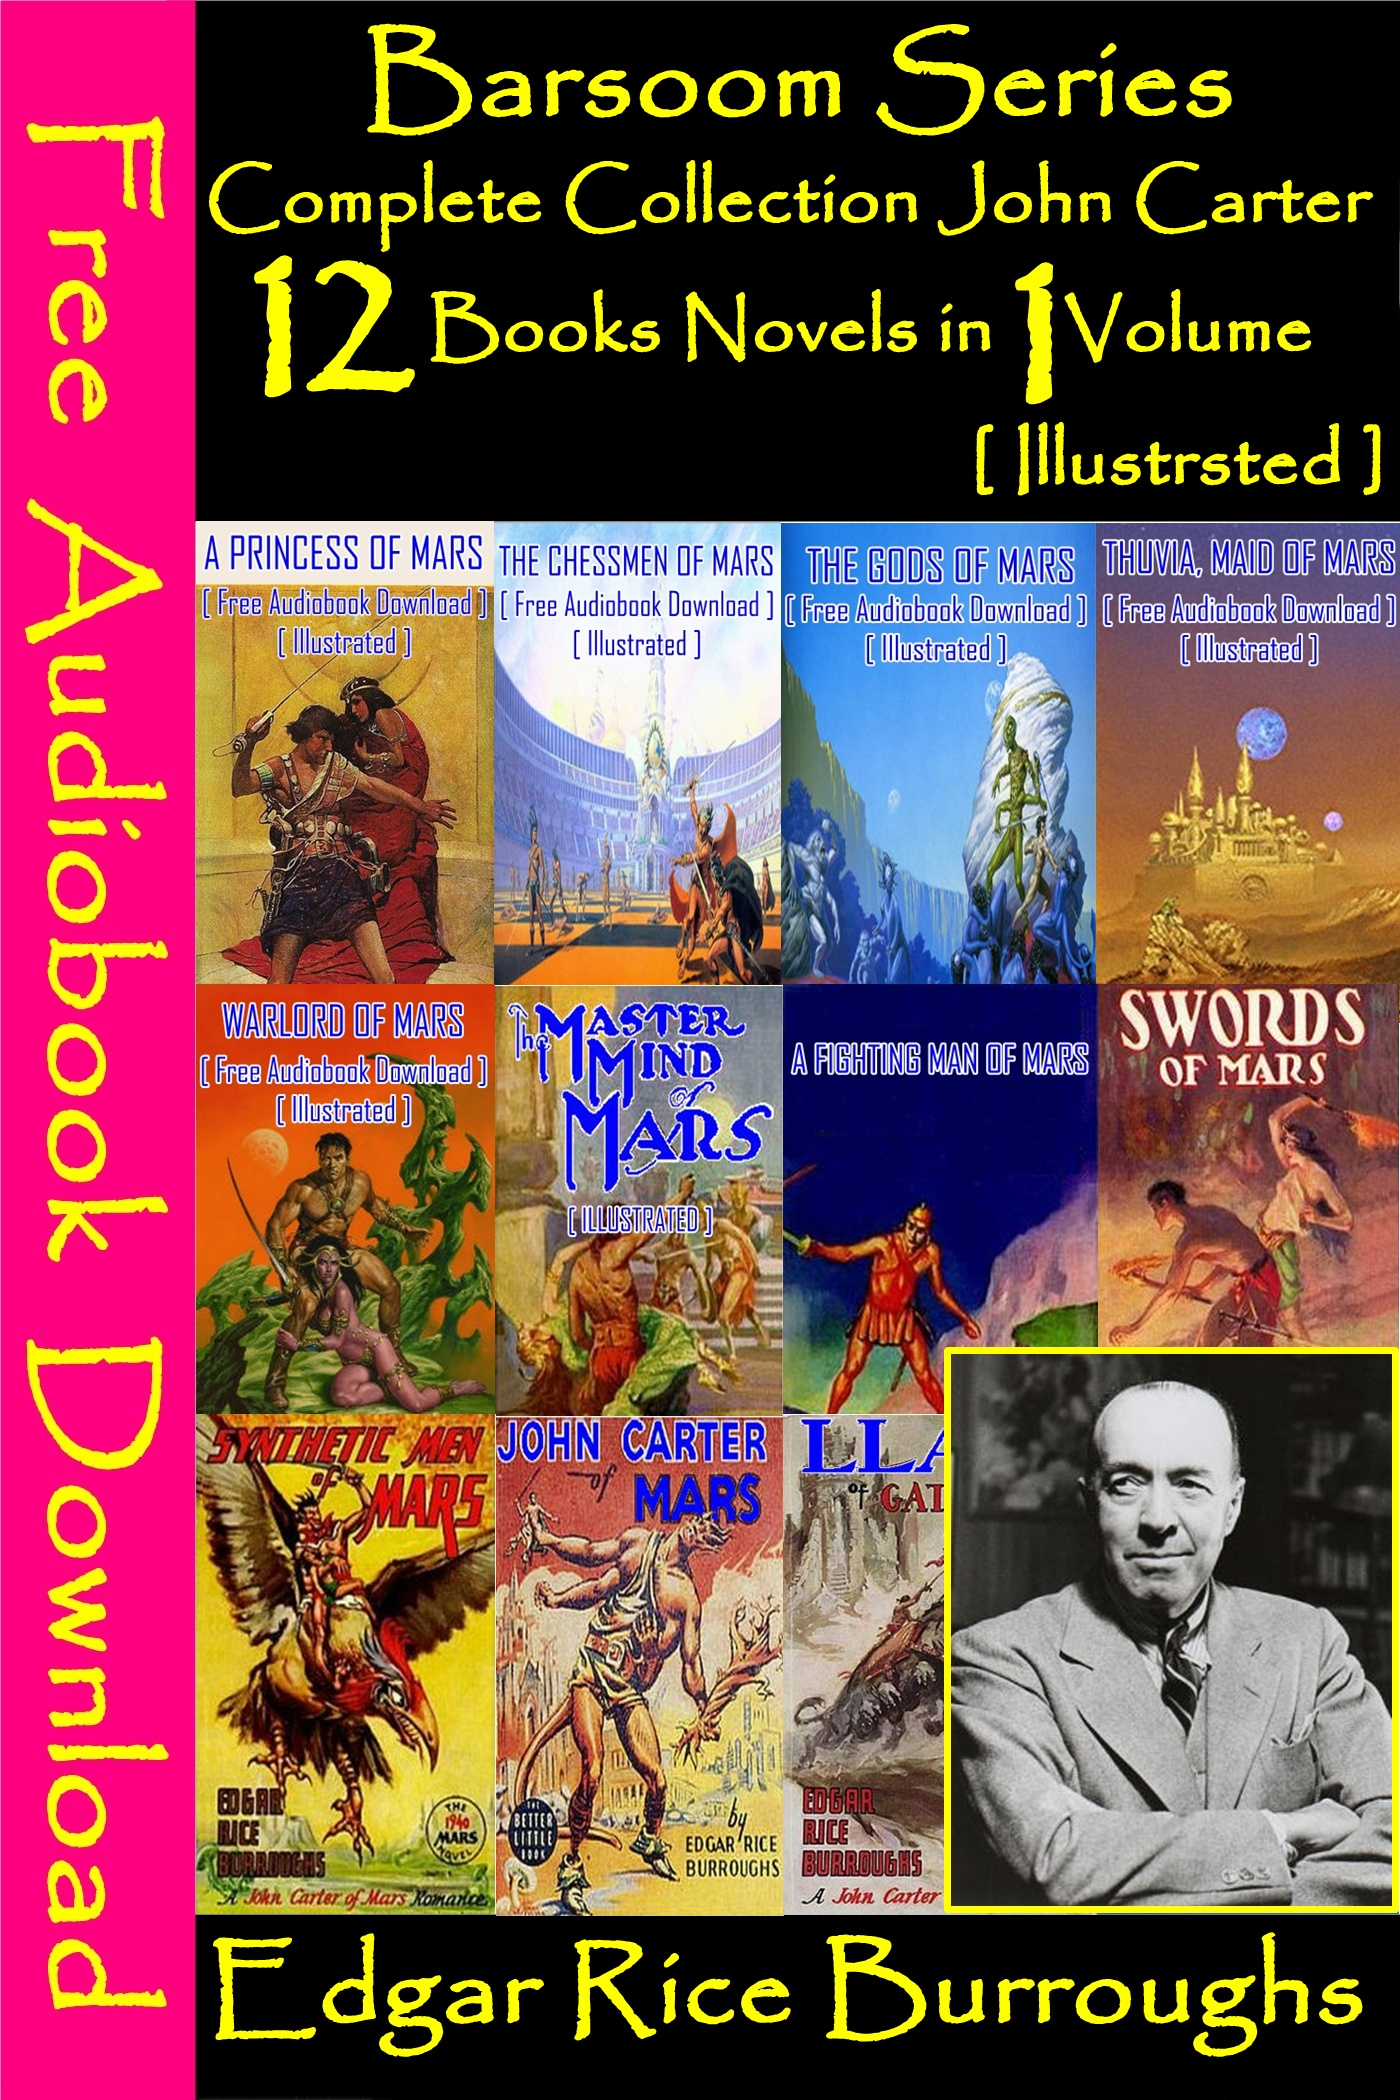 Edgar Rice Burroughs - Barsoom Series Complete Collection John Carter (12 books Novels in 1 Volume)[ Free Audiobooks Download ][ Illustrated ]